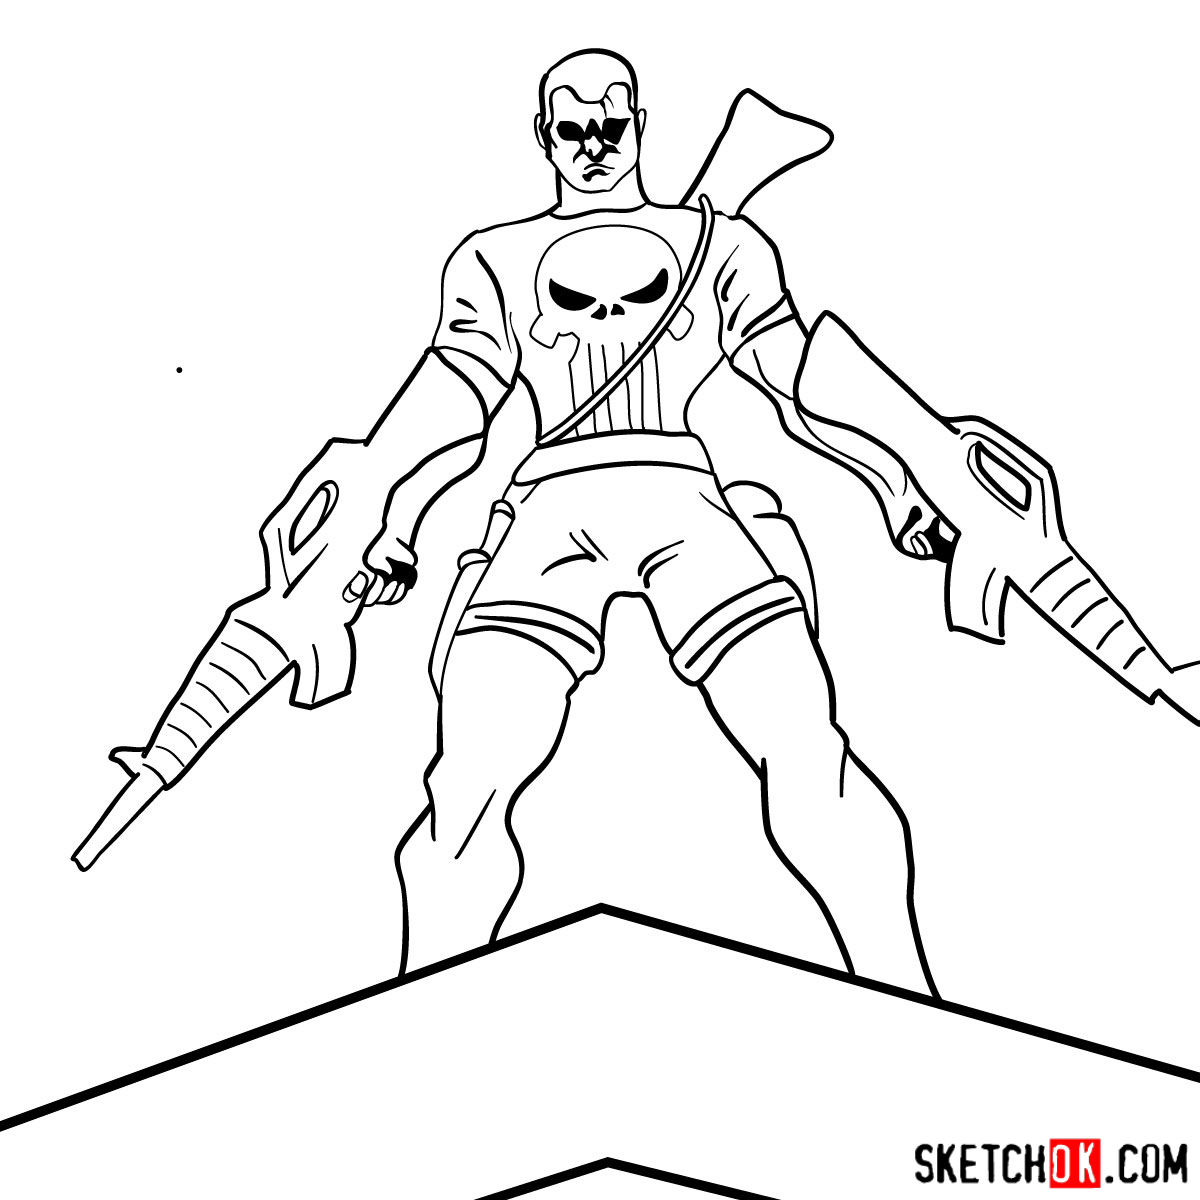 How to draw The Punisher with two submachine guns - step 12